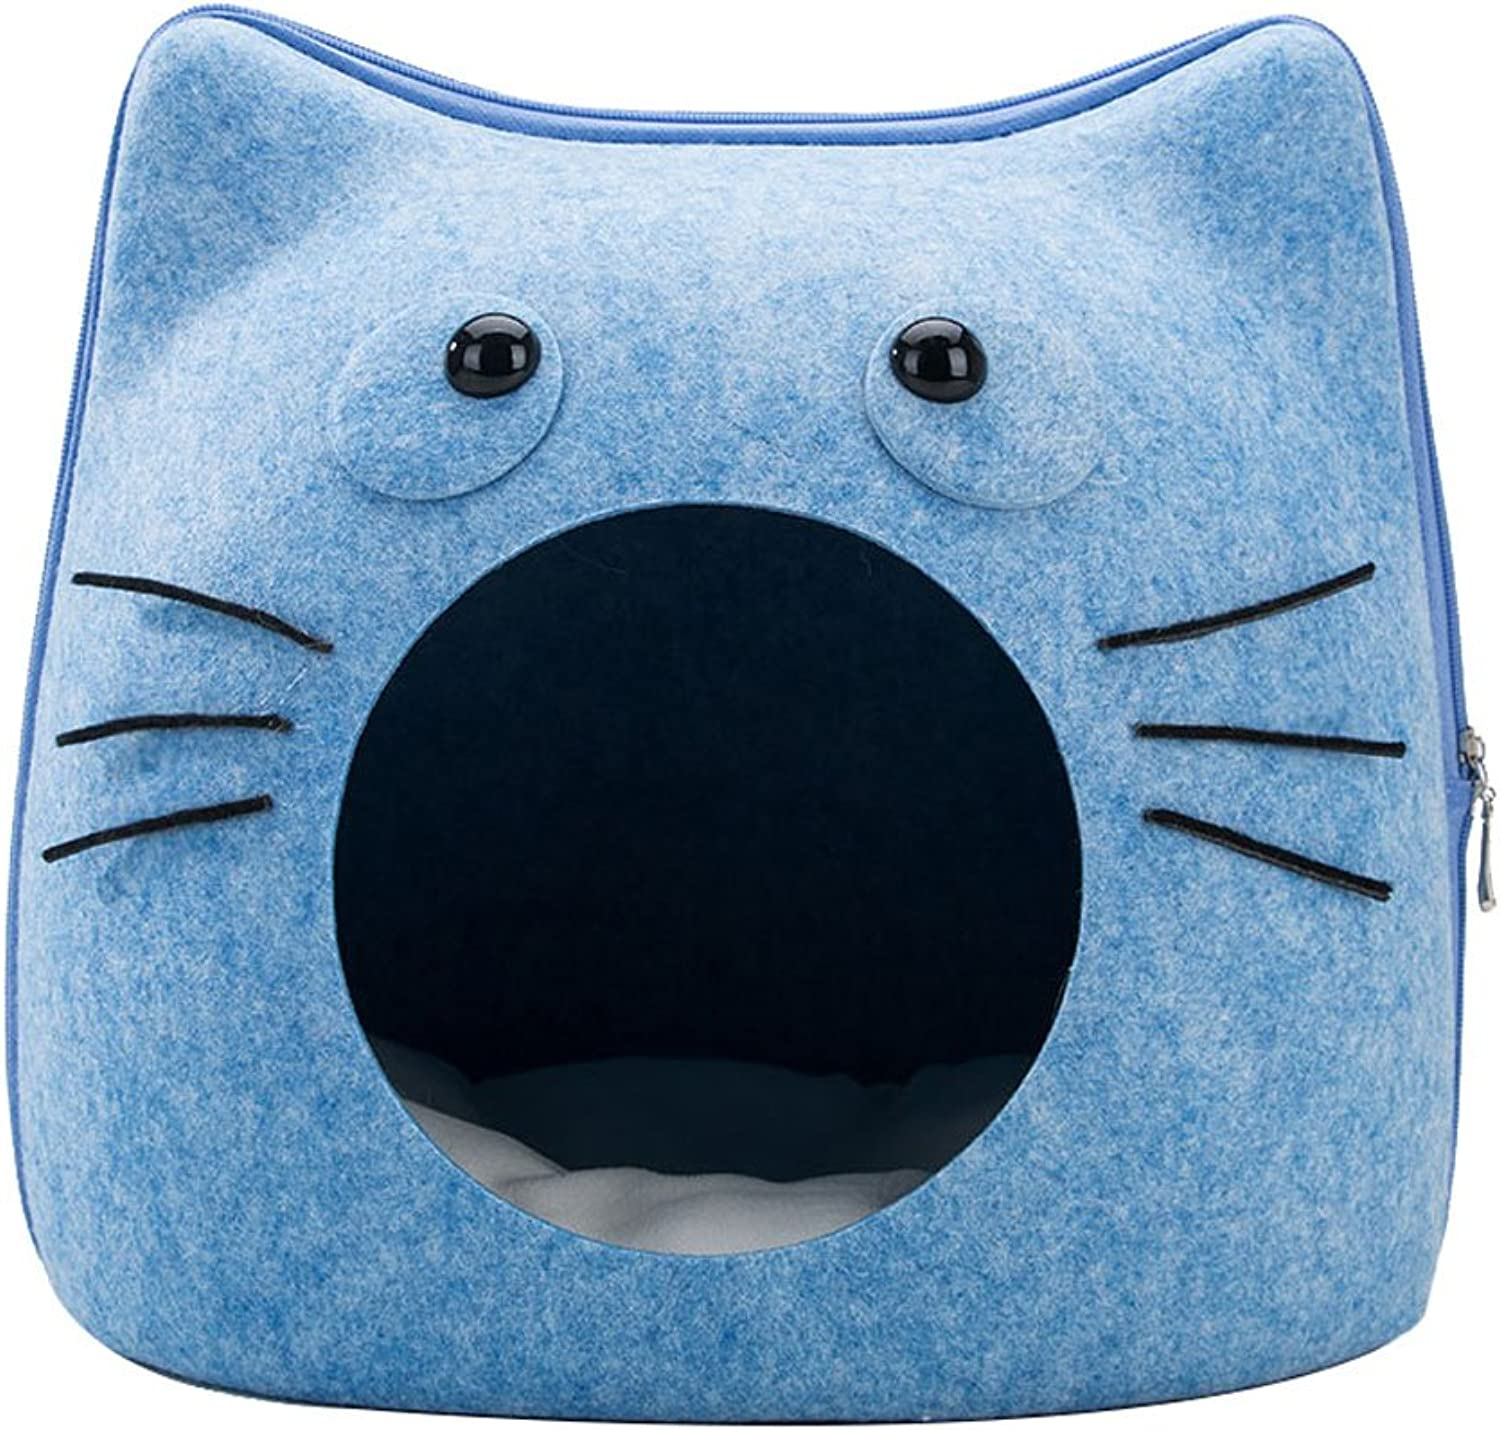 Pet harem Felt Cat Litter Kennel Cat Supplies Four Seasons Universal Removable Pet Litter bluee